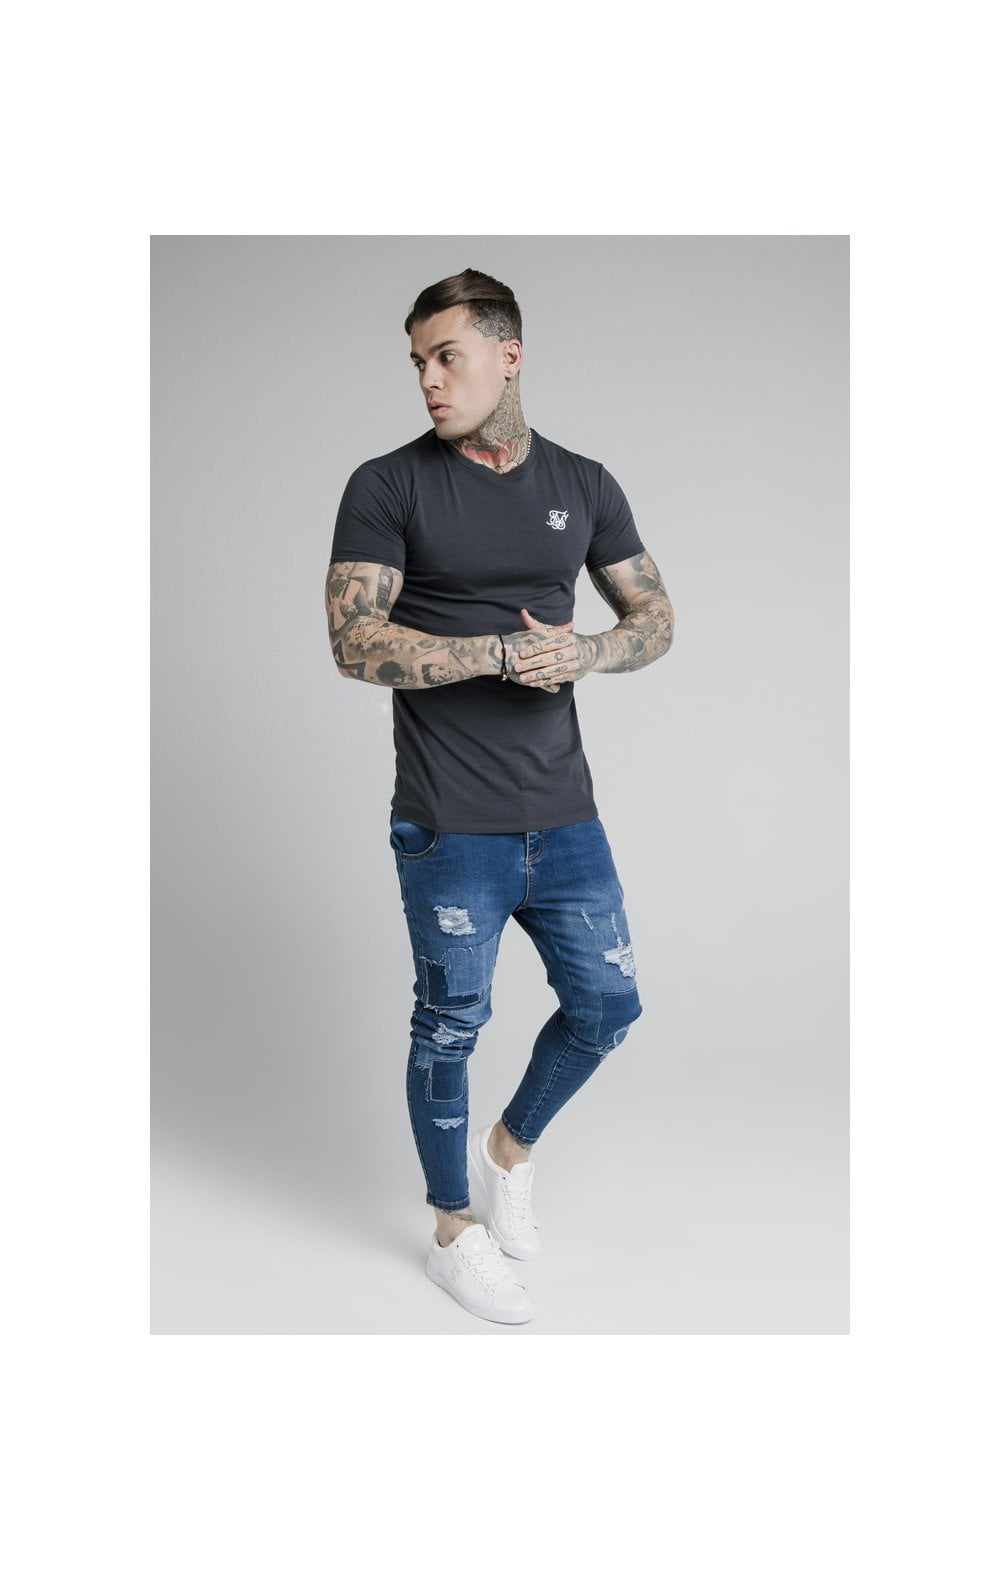 SikSilk Straight Hem Gym Tee - Navy (2)